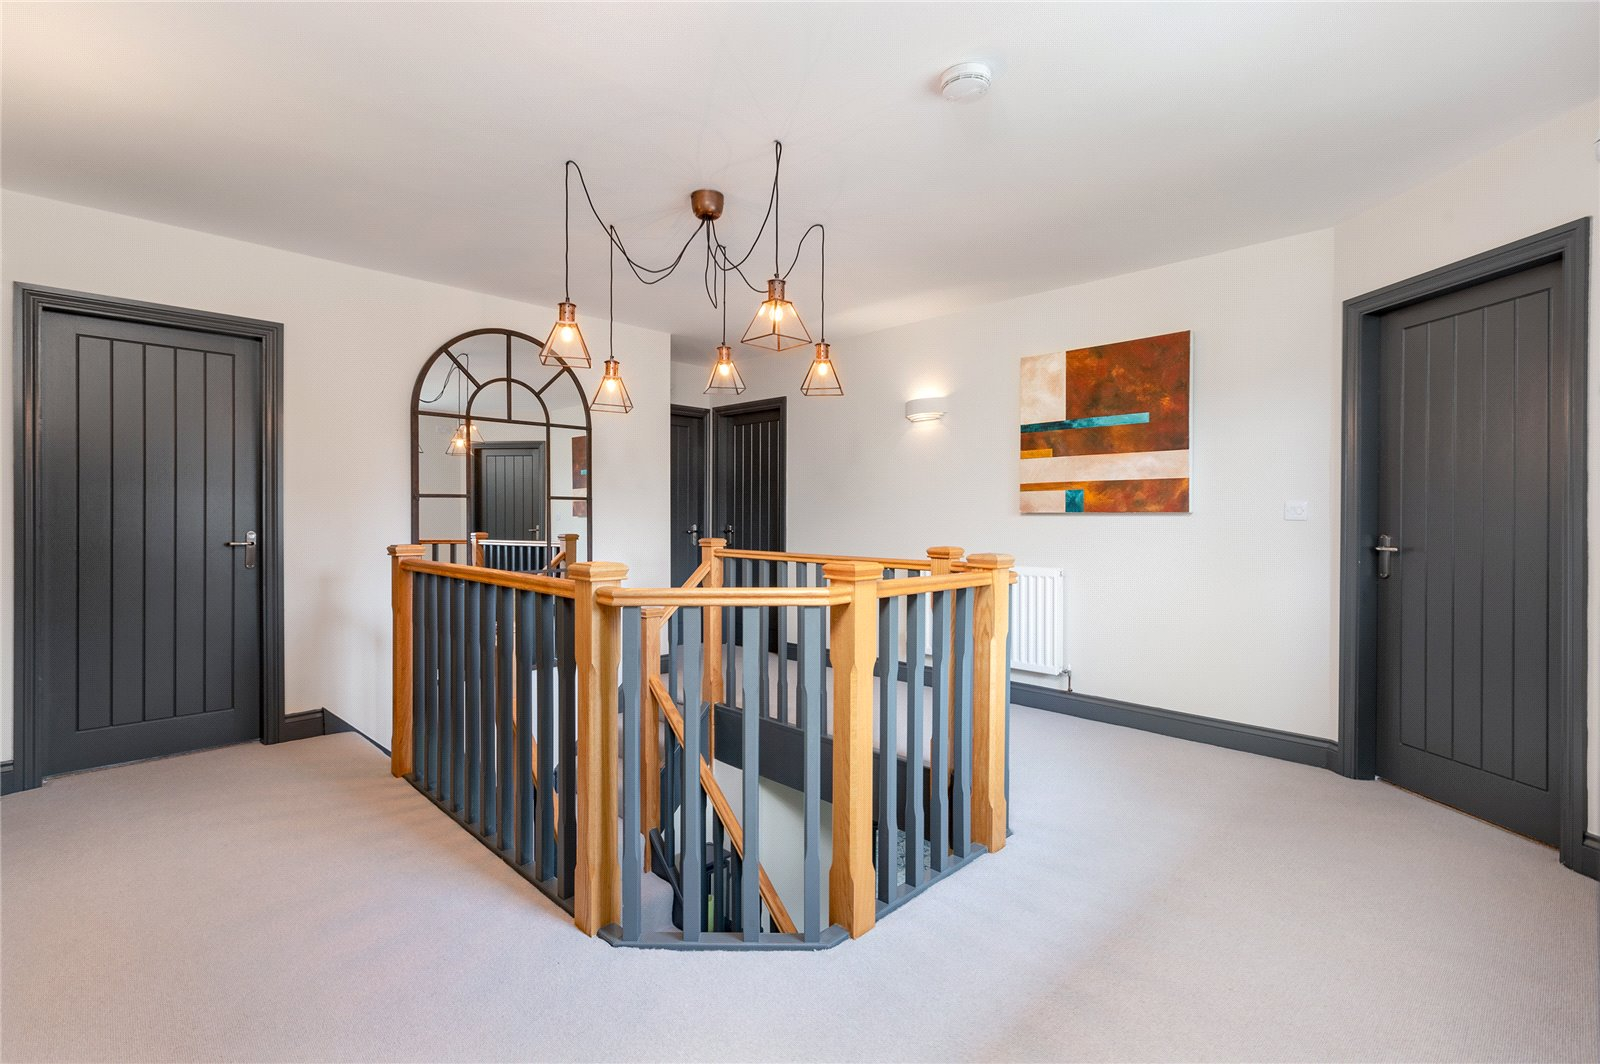 6 bed house for sale in Ladgate Lane, Middlesbrough  - Property Image 20